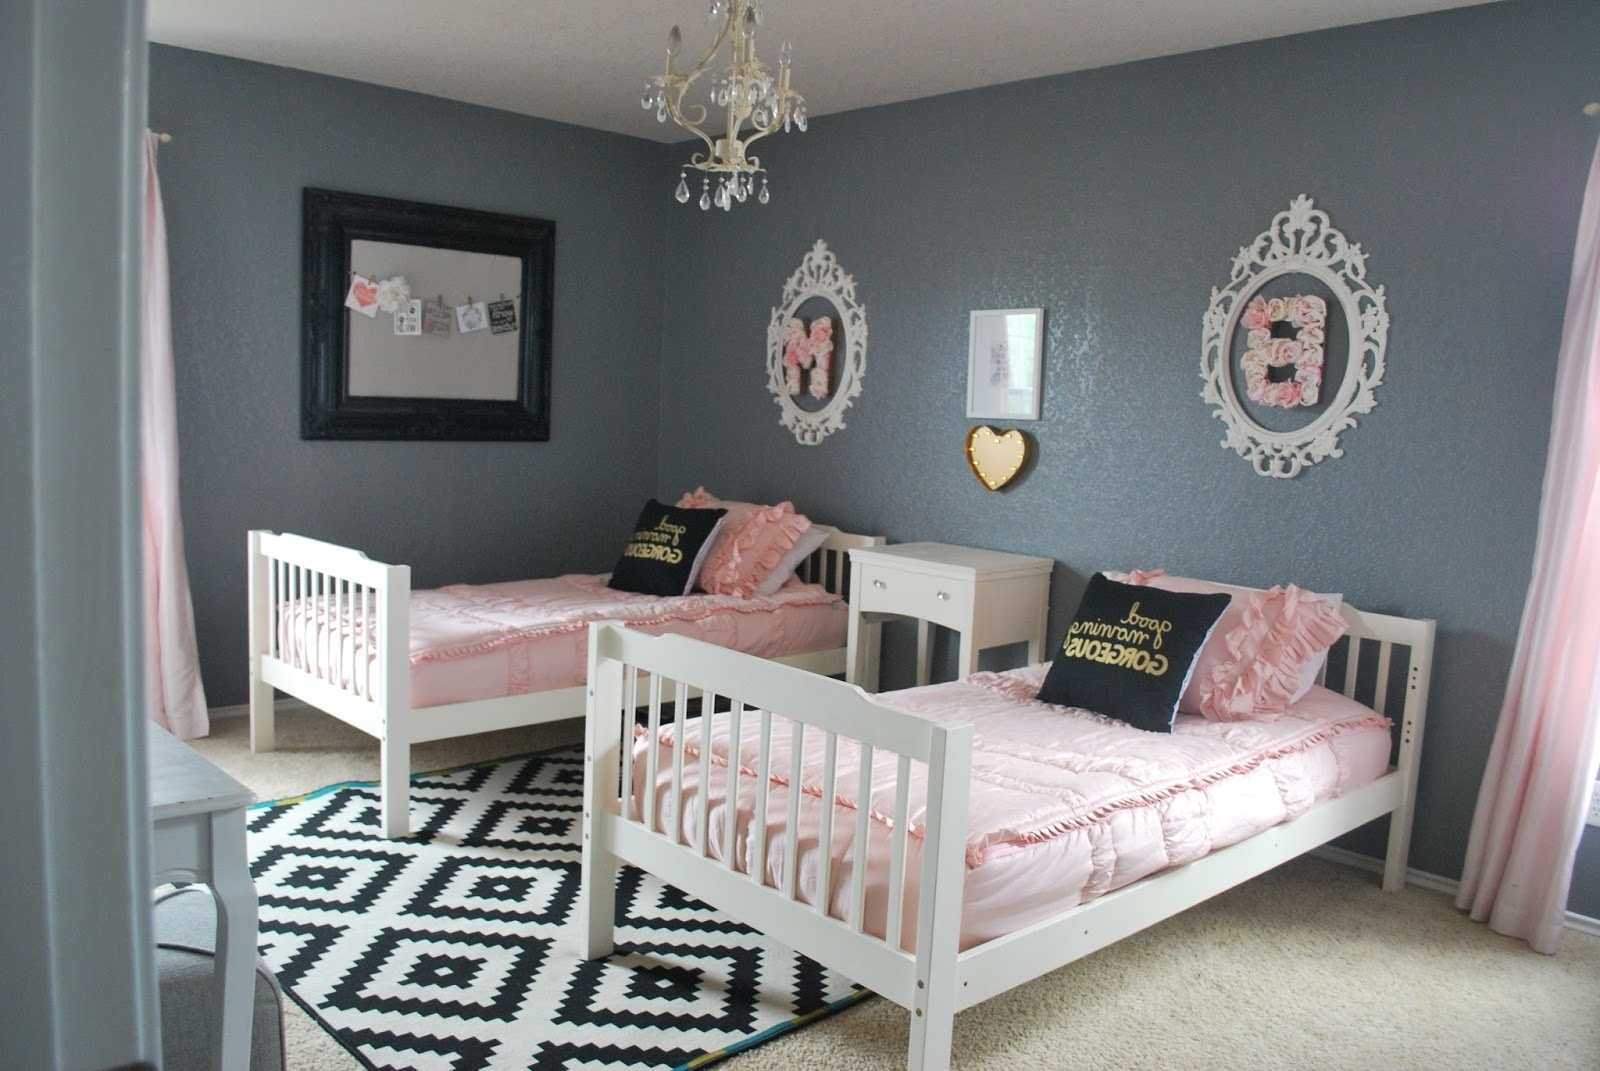 Bits Of Splendor: Girls' Room Makeover With How To Decorate A Girls Room (Image 16 of 24)